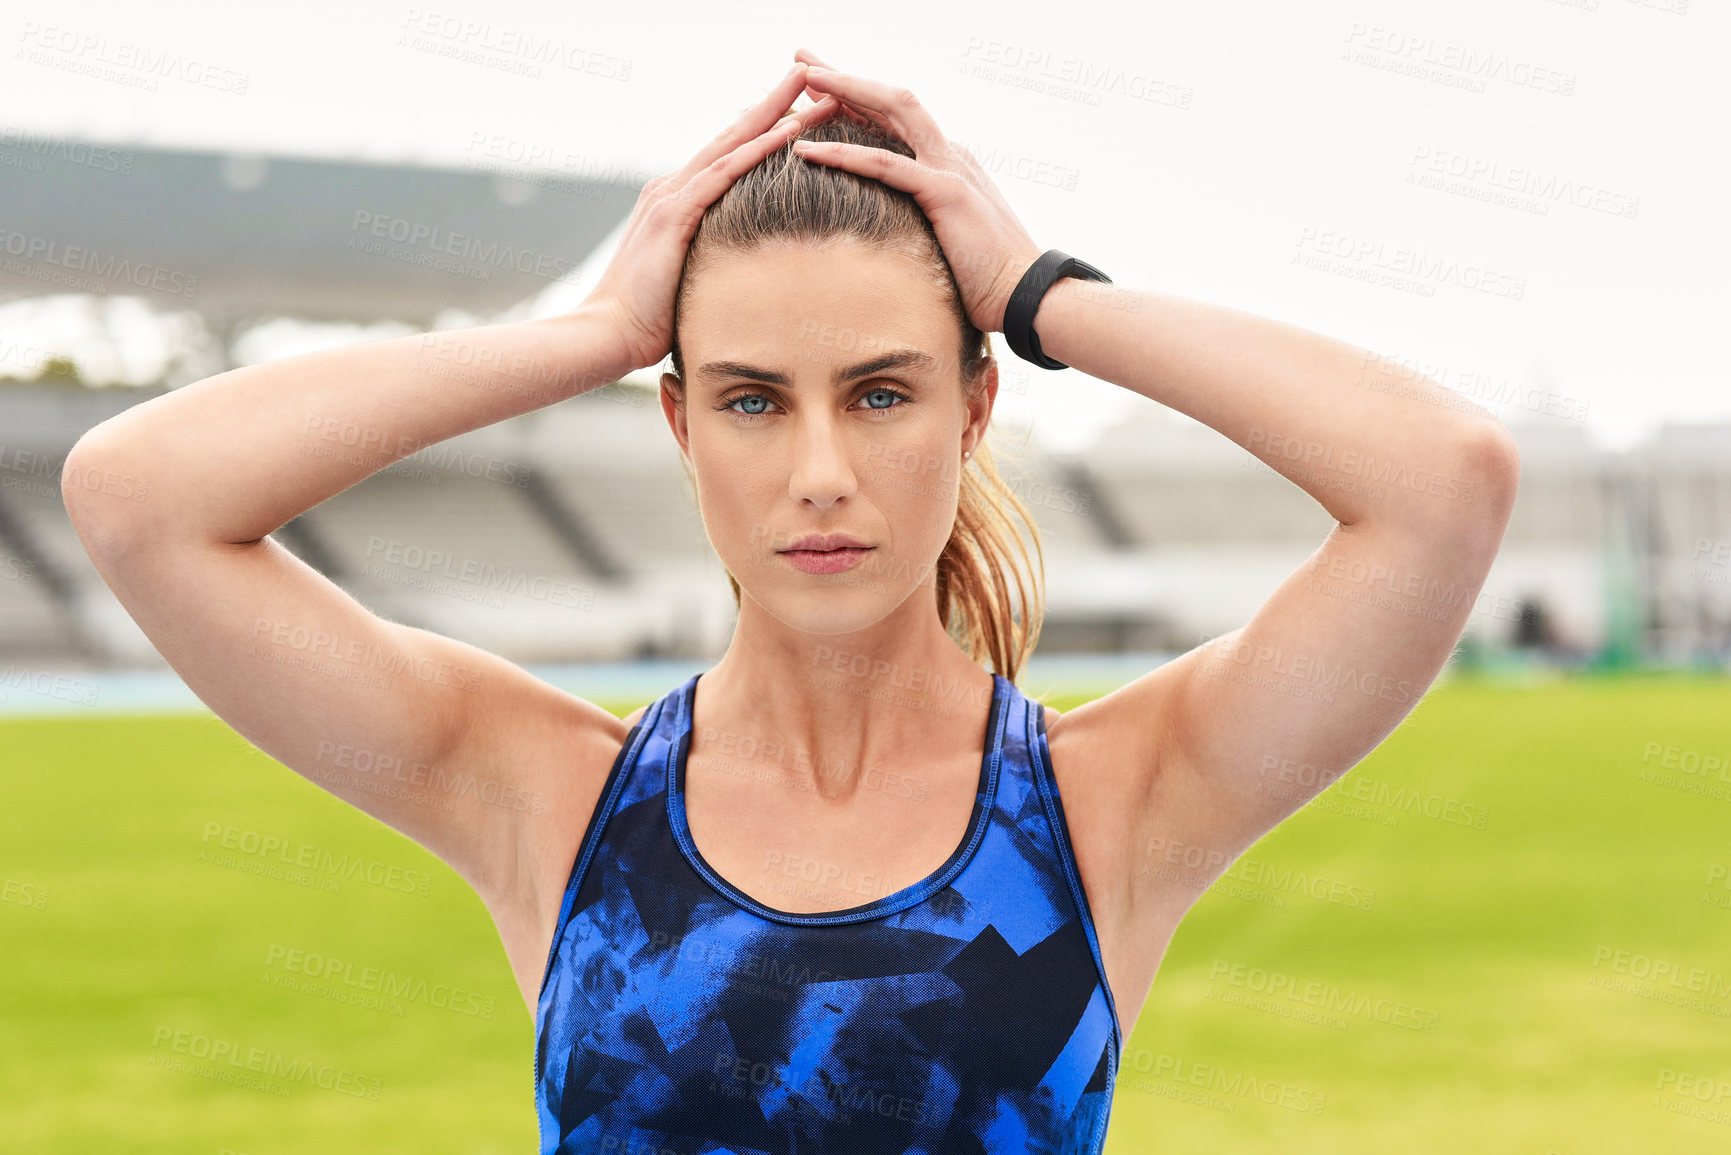 Buy stock photo Cropped portrait of an attractive young female athlete standing with her hands on her head on the track